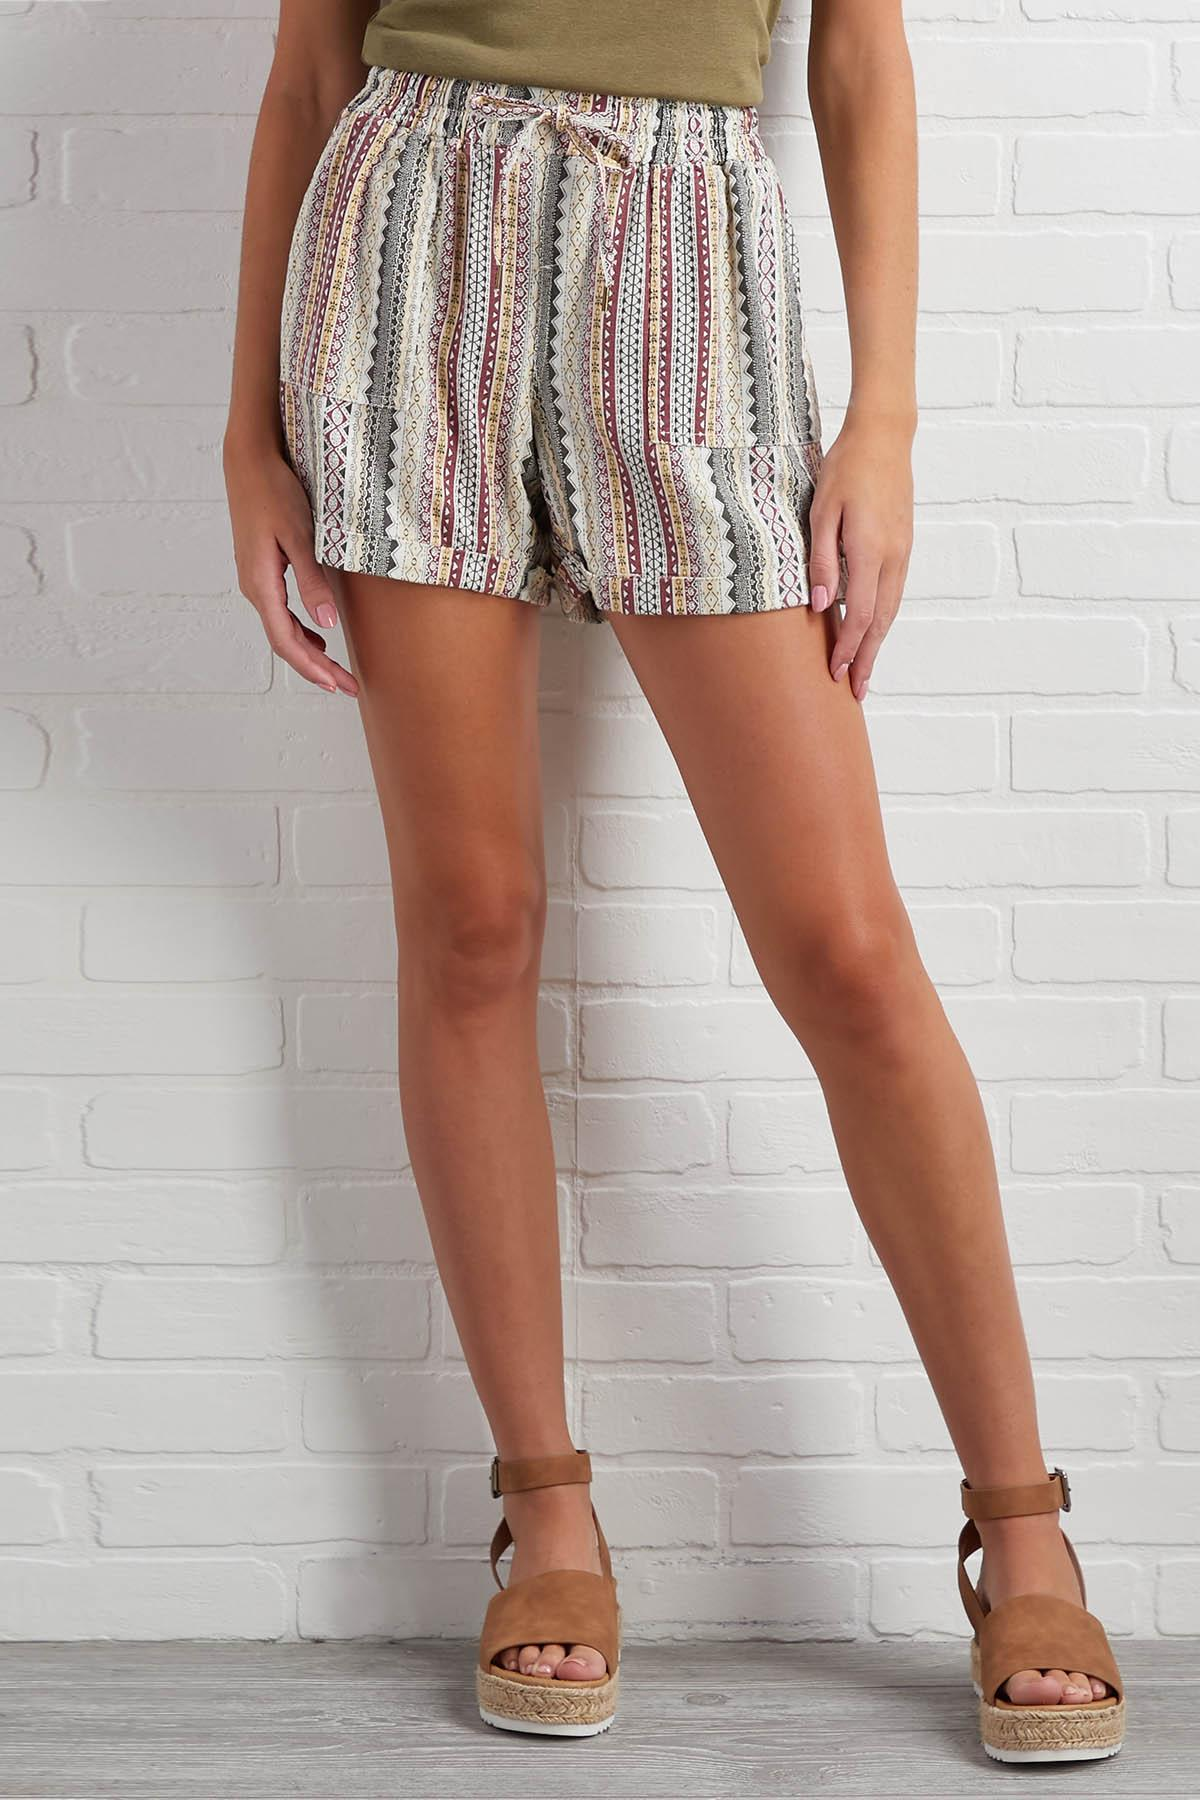 Come Aztec You Are Shorts